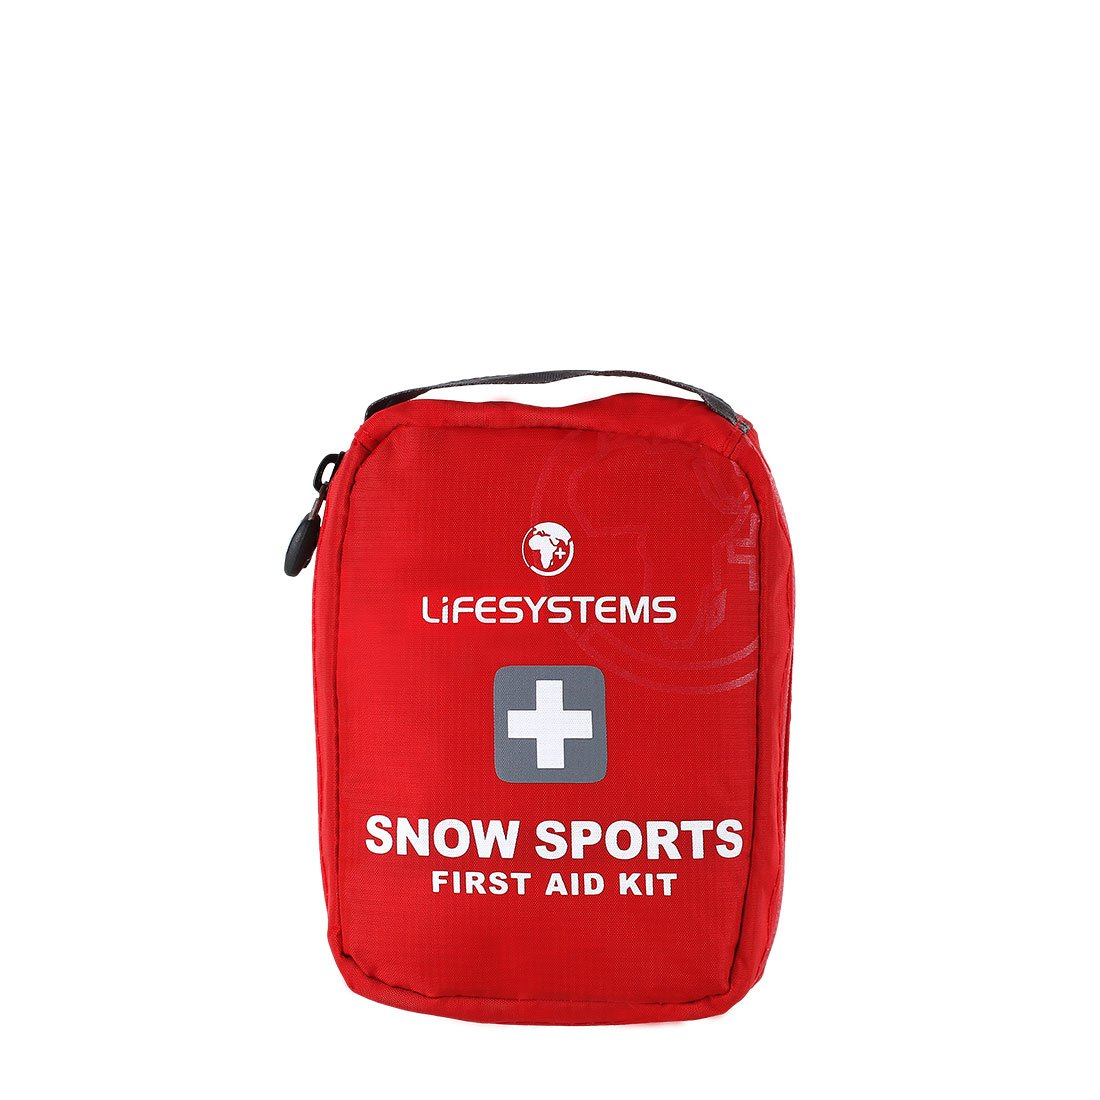 Snow Sports First Aid Kit Travel First Aid Kit Lifesystems